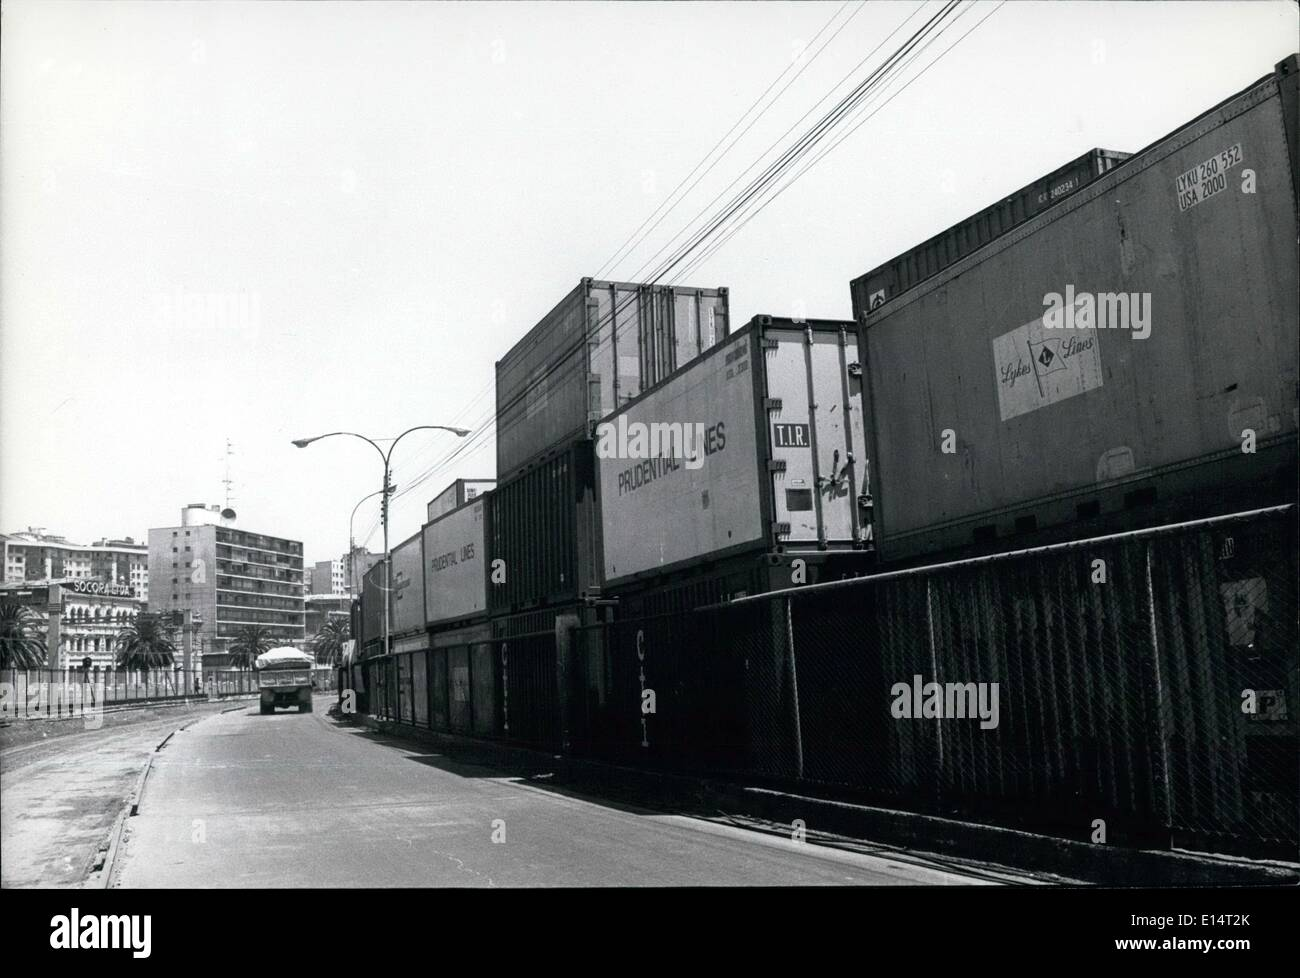 Apr. 18, 2012 - Valpariso, Chile: Contaminated freight at Port. - Stock Image